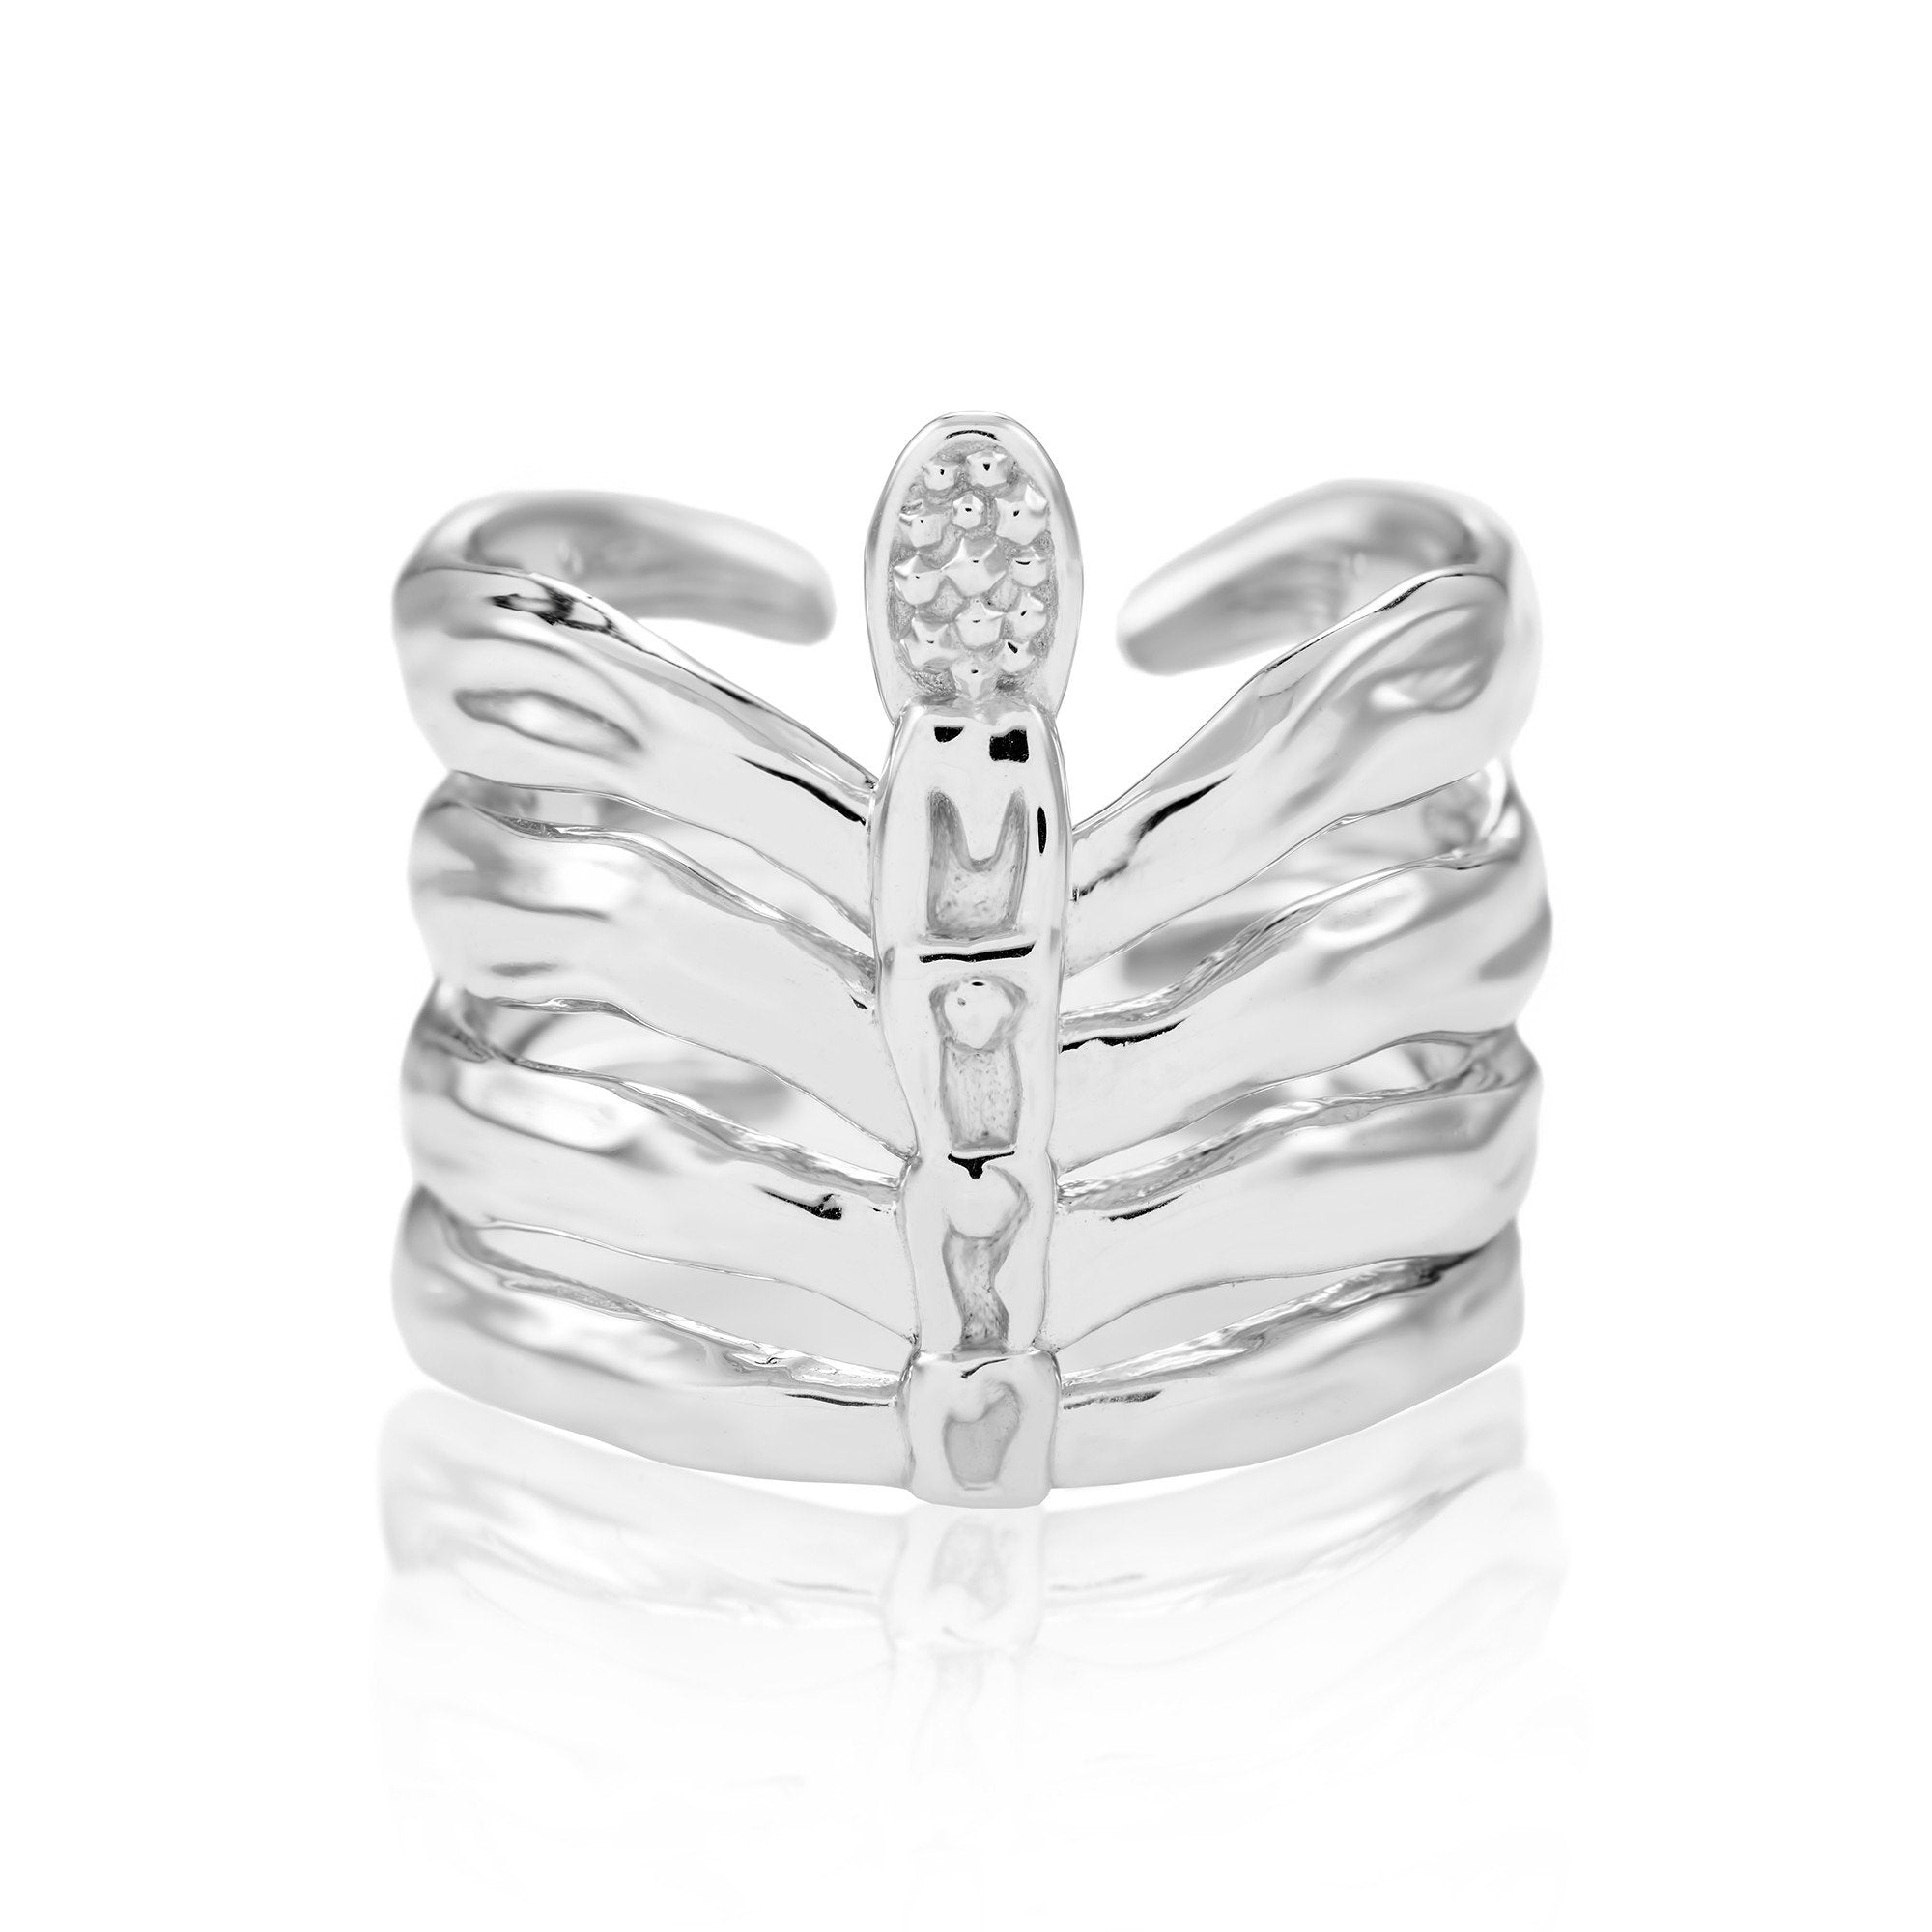 The Rib Cage Ring - Fiyah Jewellery - 1